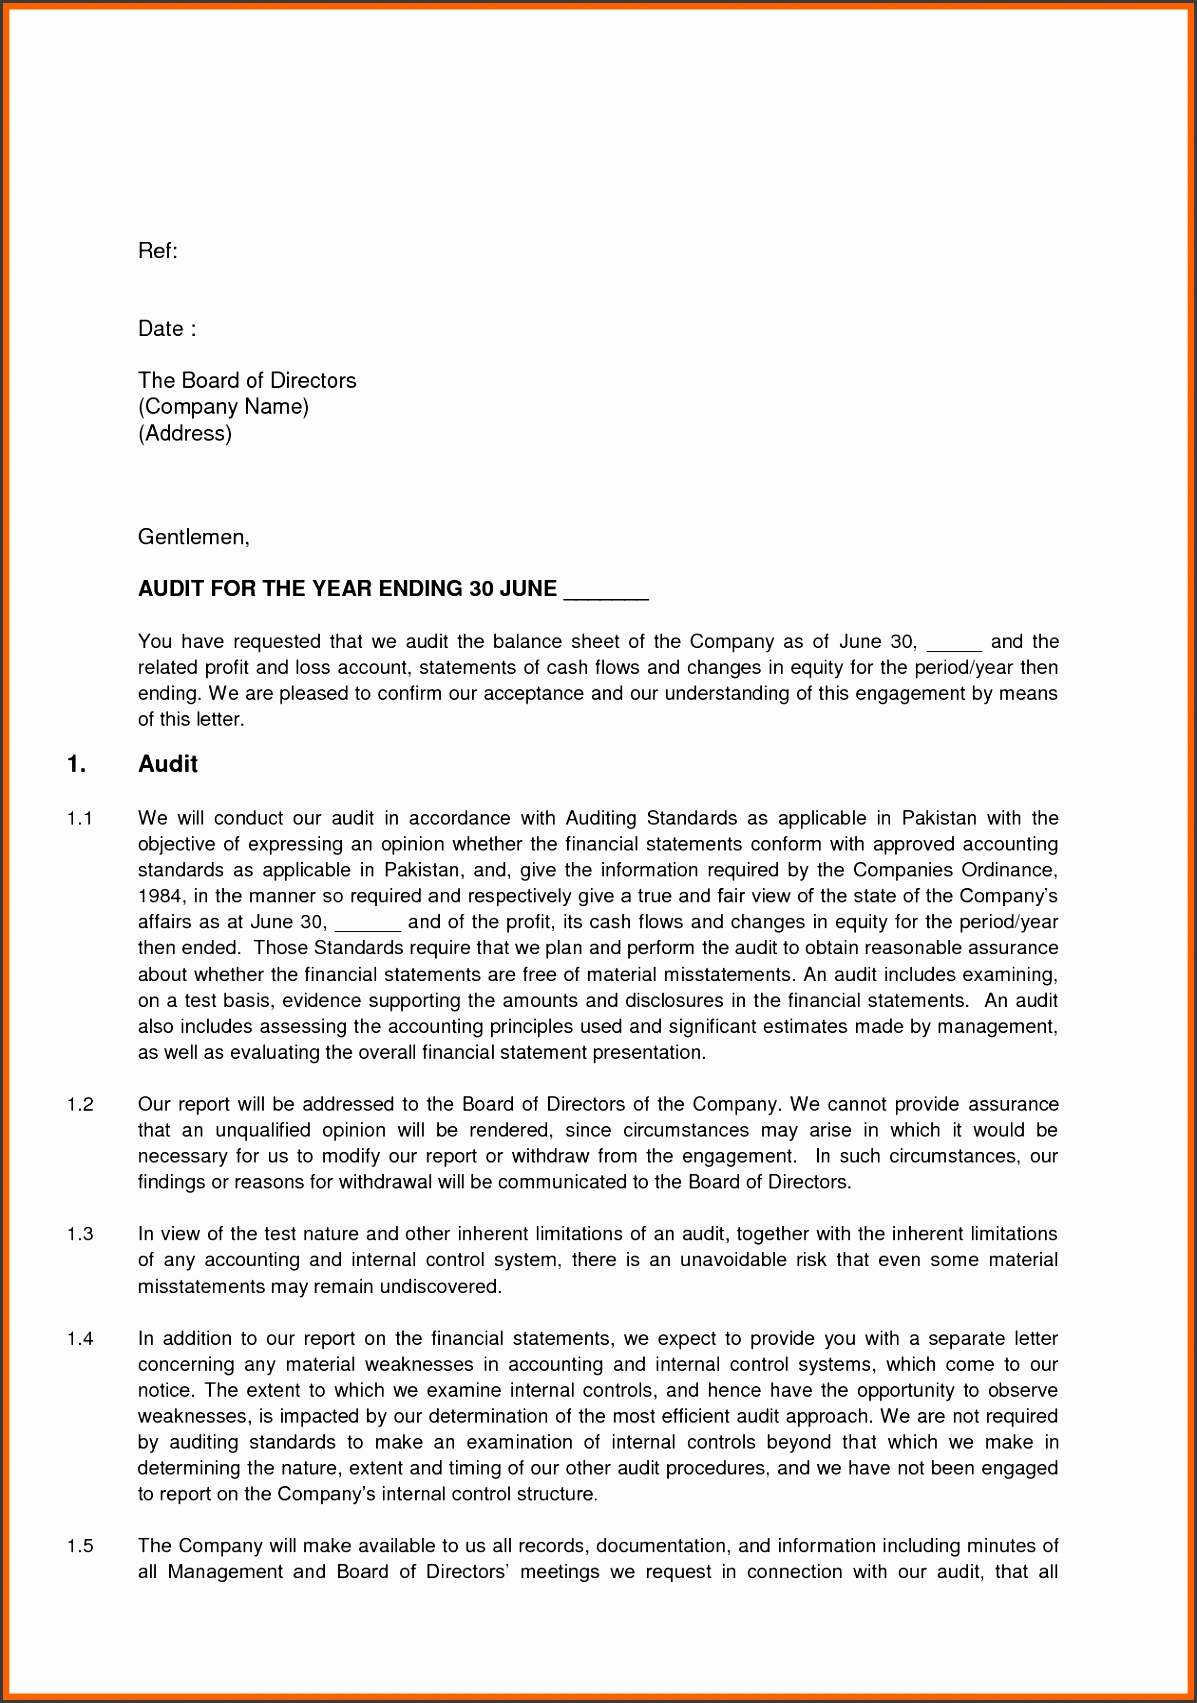 Aicpa Enement Letter Template on